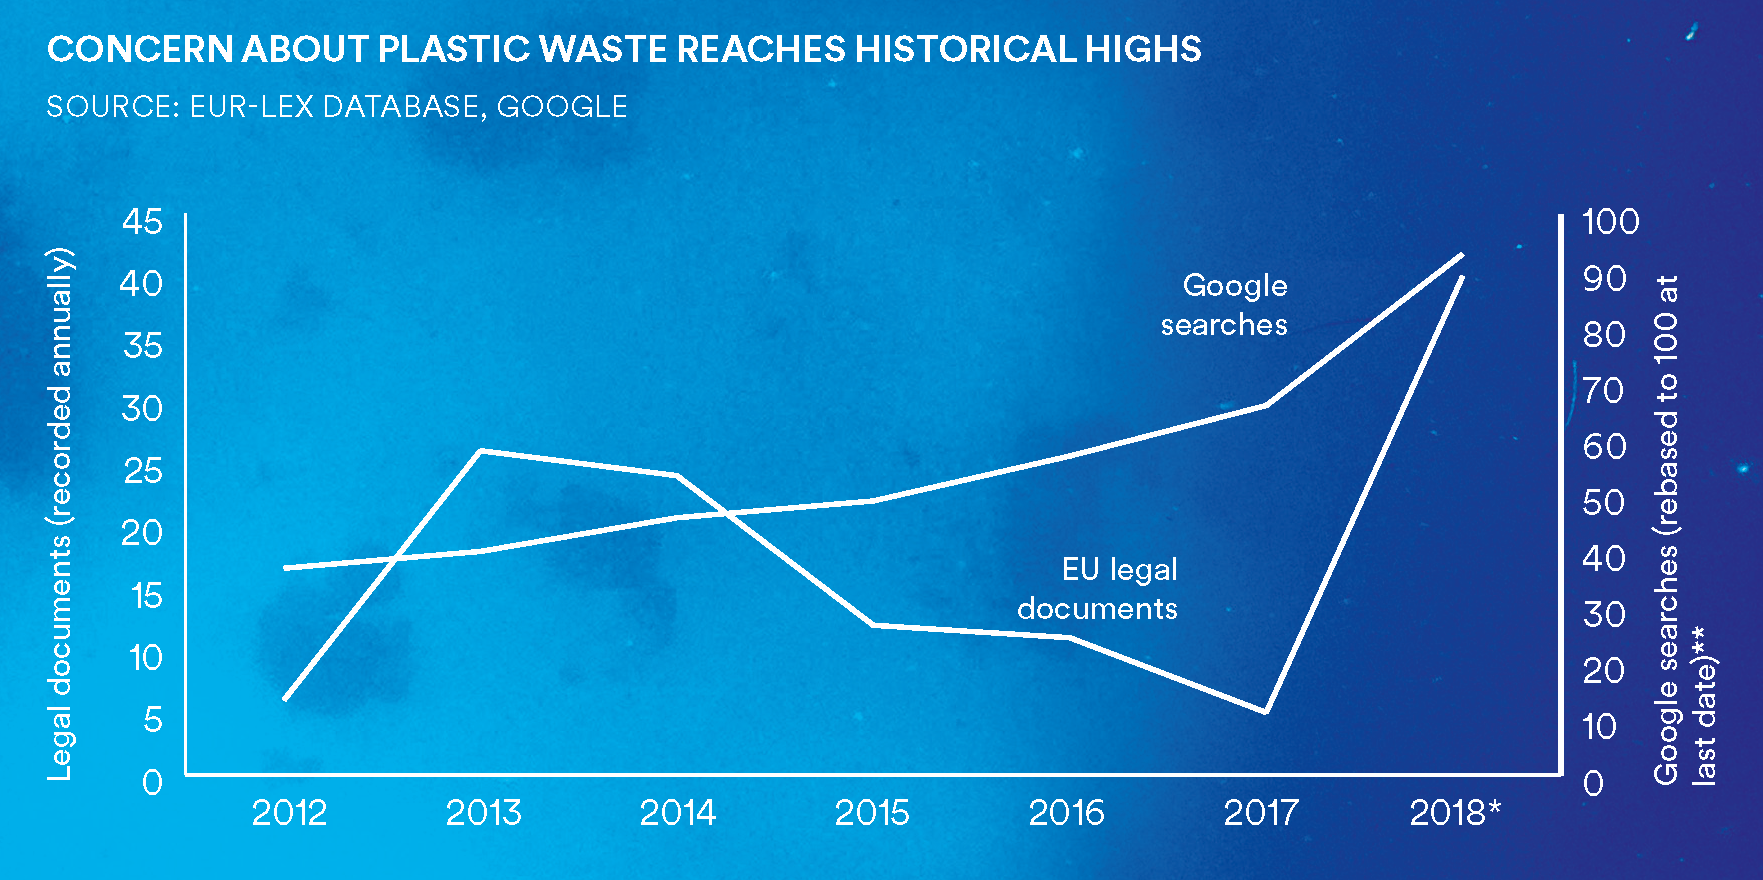 concern about plastic waste reaches historical highs. Google searches are up from 70 in 2017 to 95 in 2018